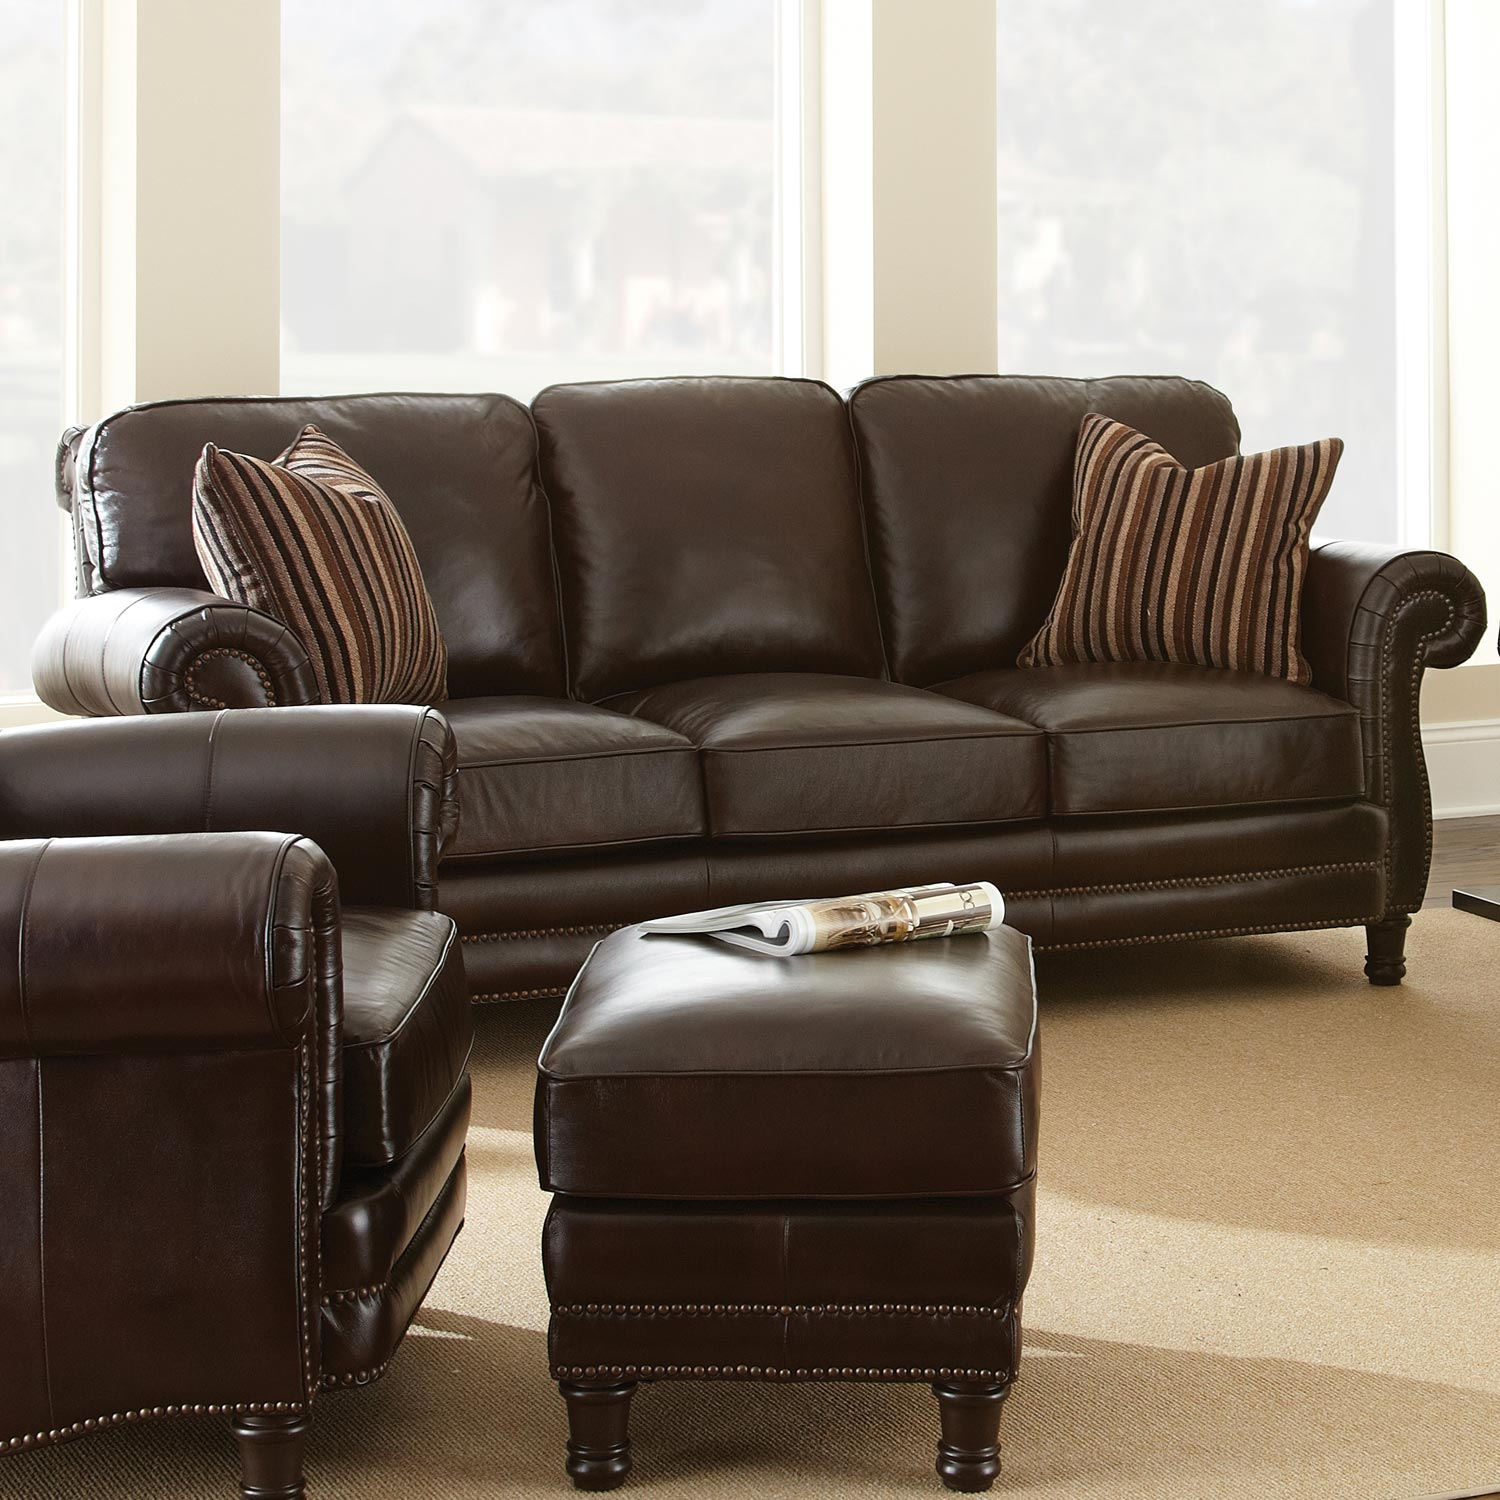 Chateau Leather Sofa - Nail Heads, Antique Chocolate Brown - SSC-CH860S